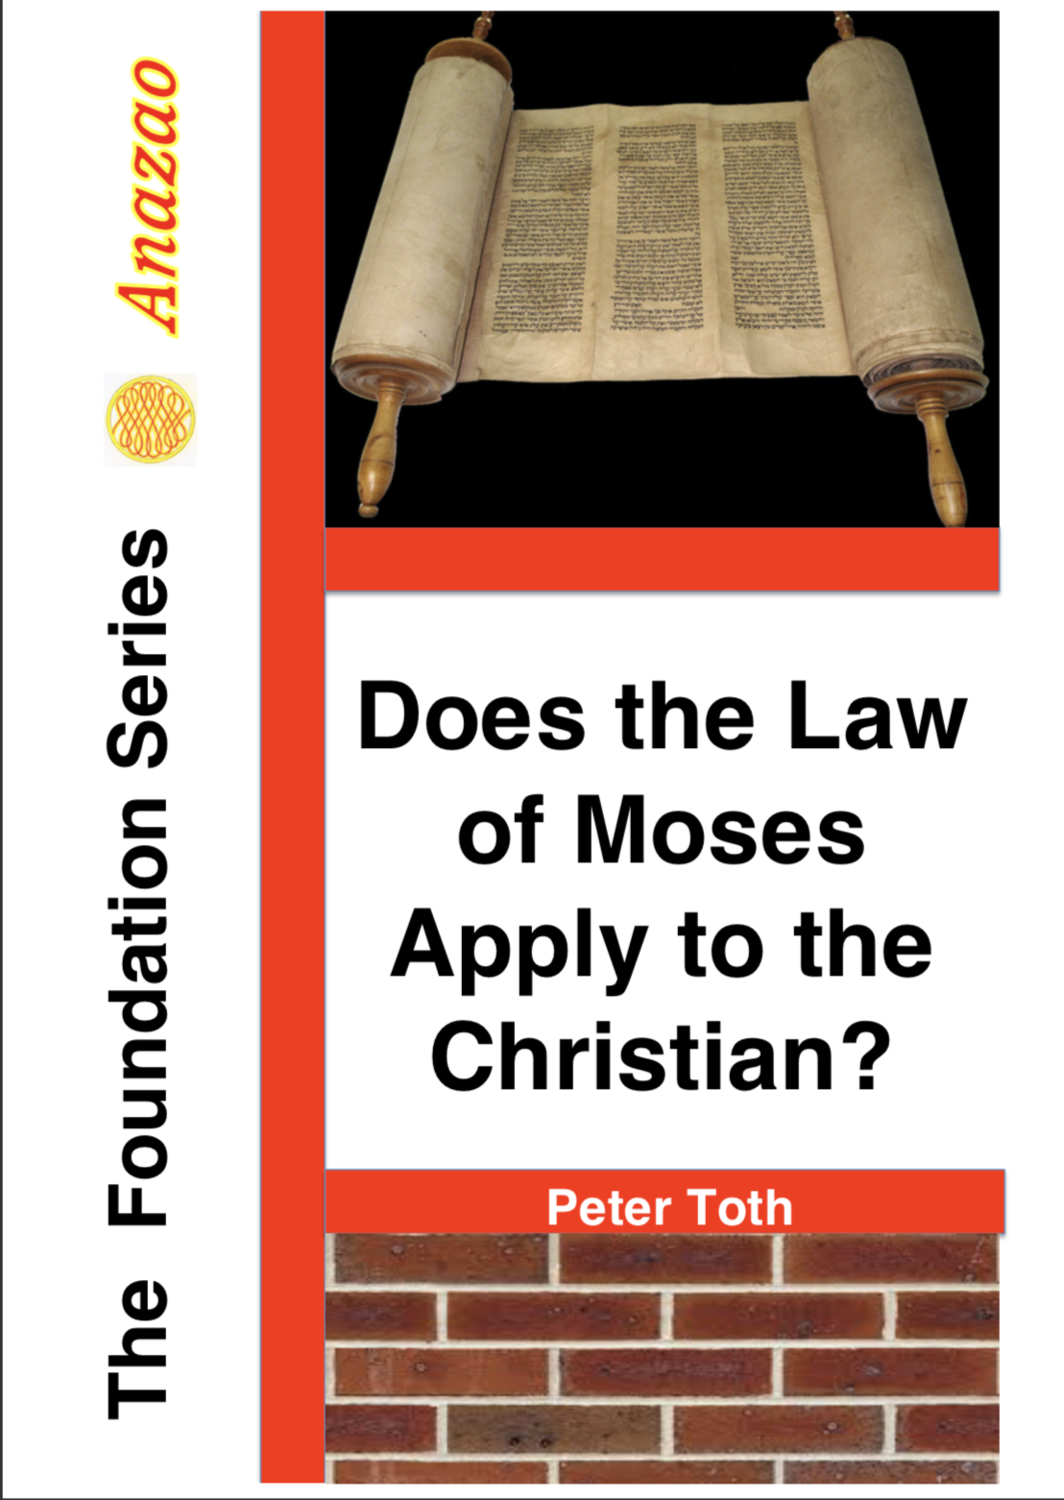 Does the Law of Moses Apply to the Christian?